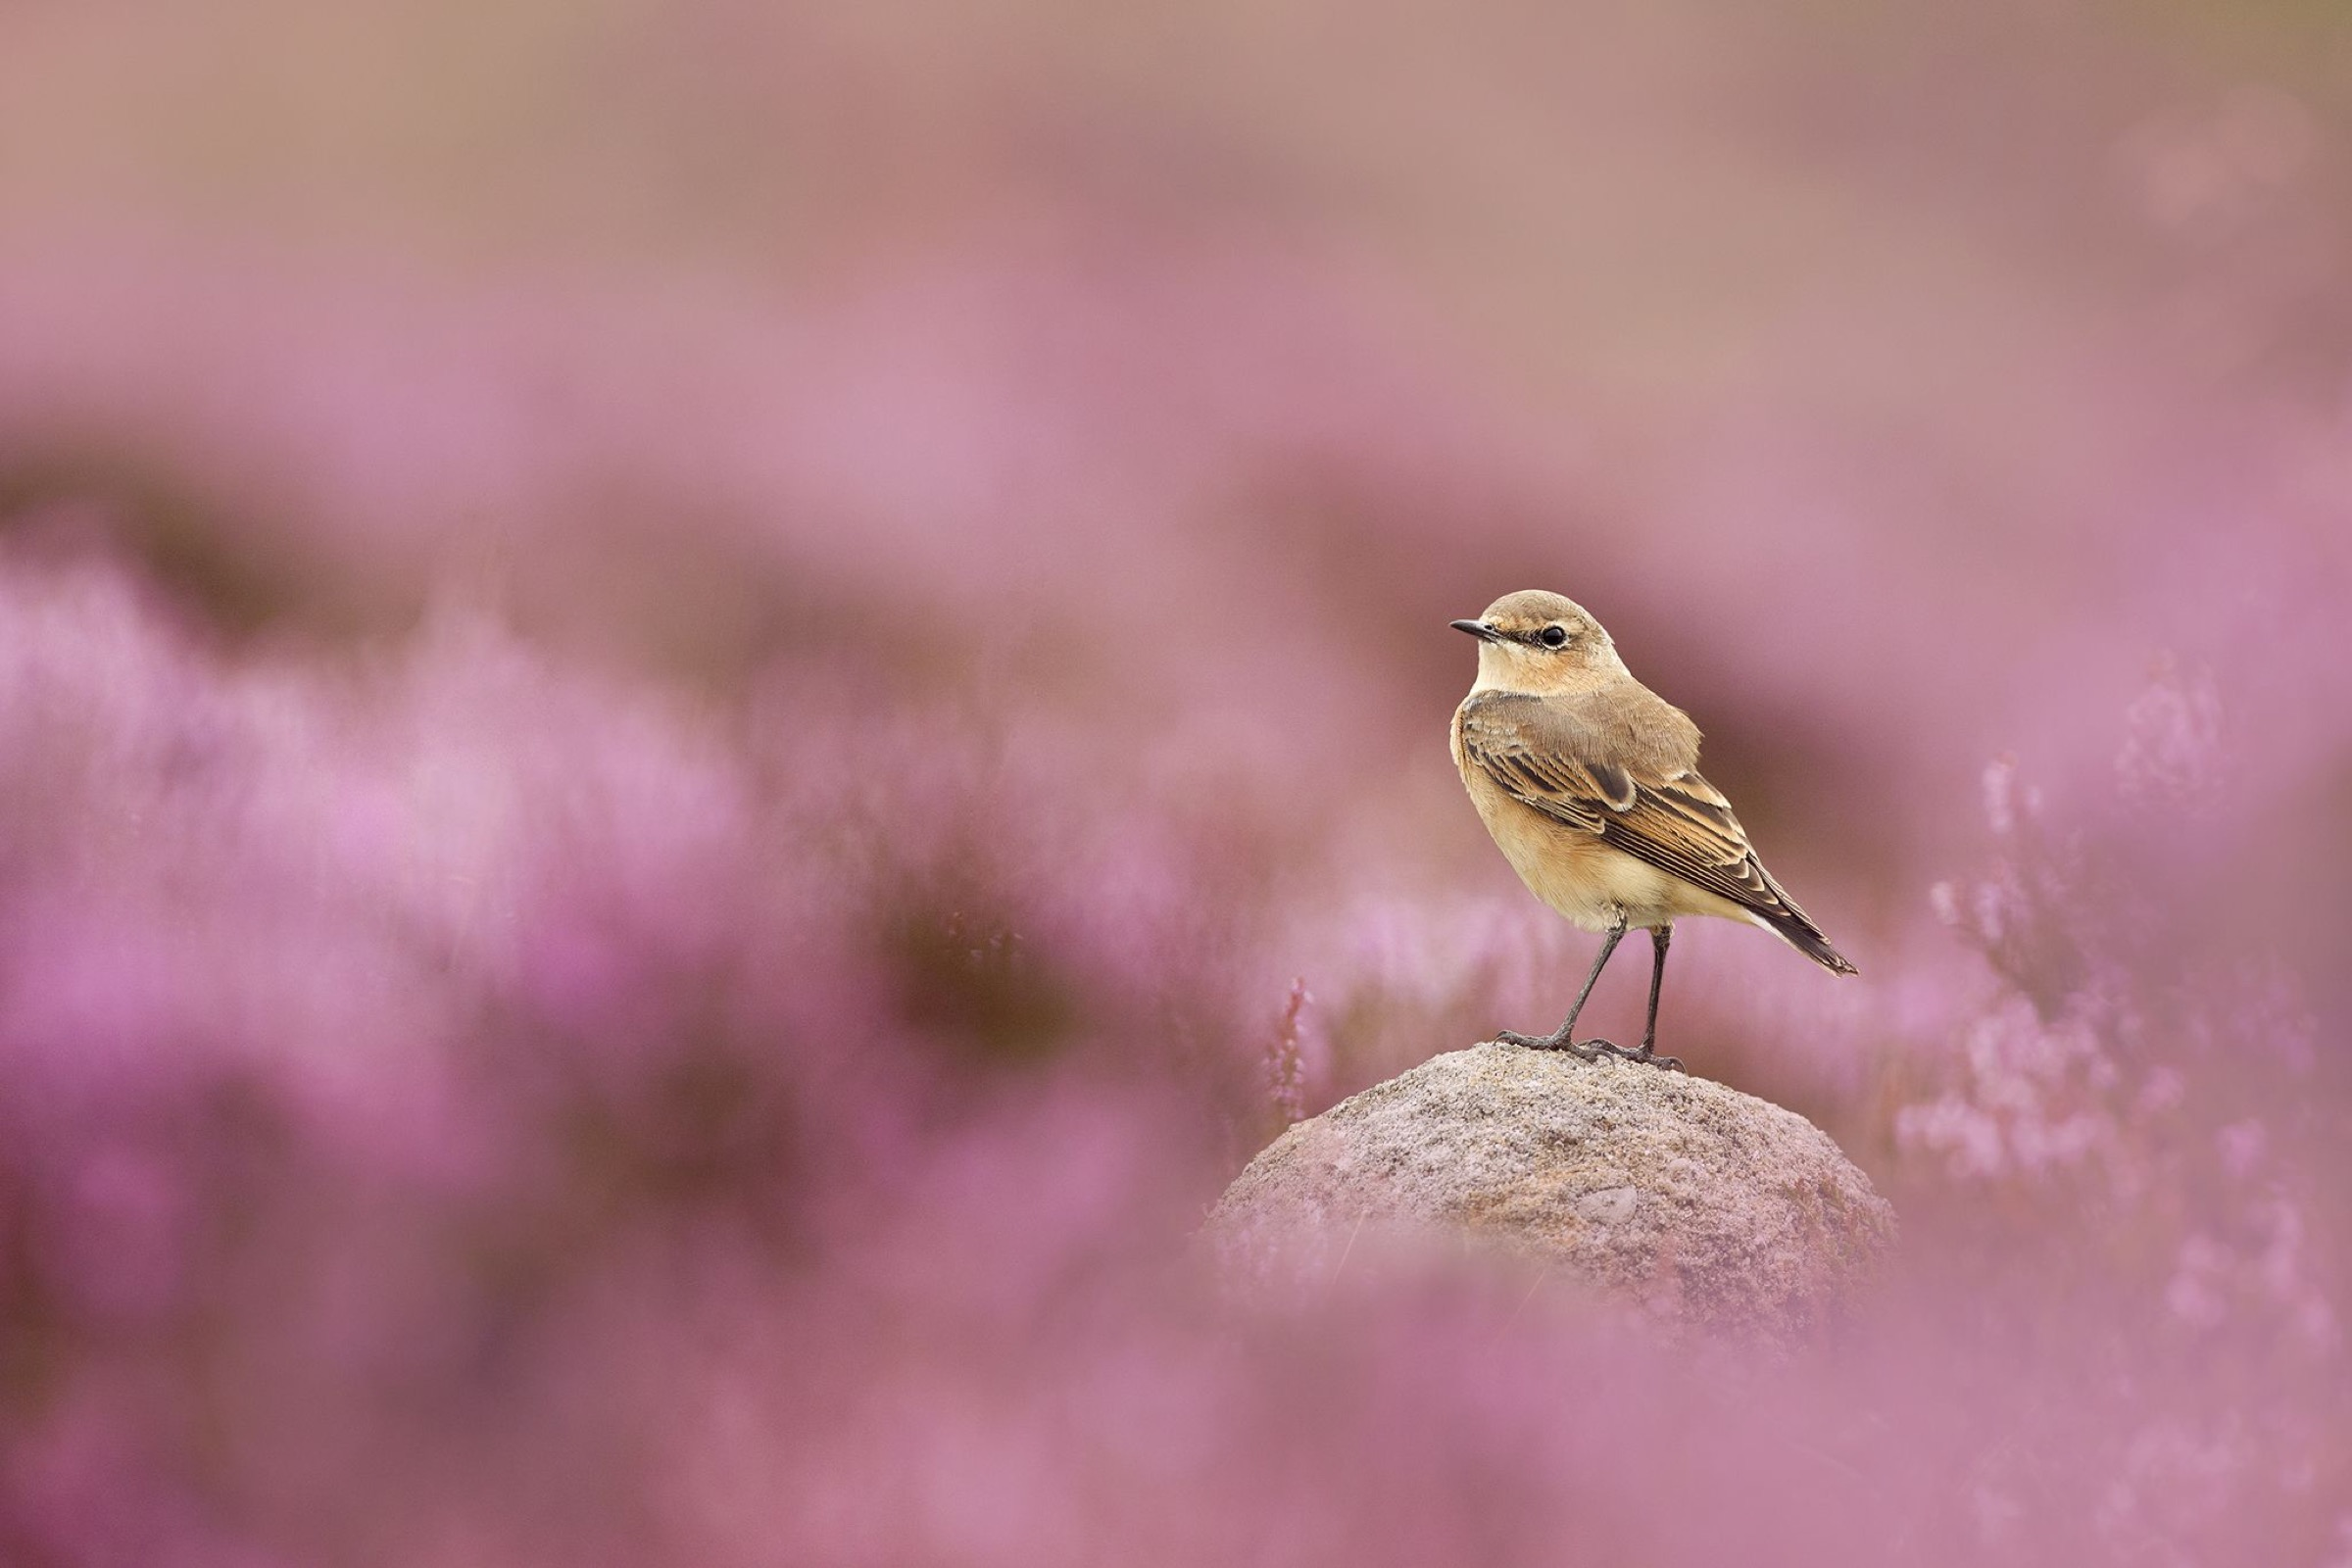 Wheatear, (Oenanthe oenanthe) perched on gritstone rock amongst flowering heather (Ericaceae sp), Peak District NP, August 2011. 2020.